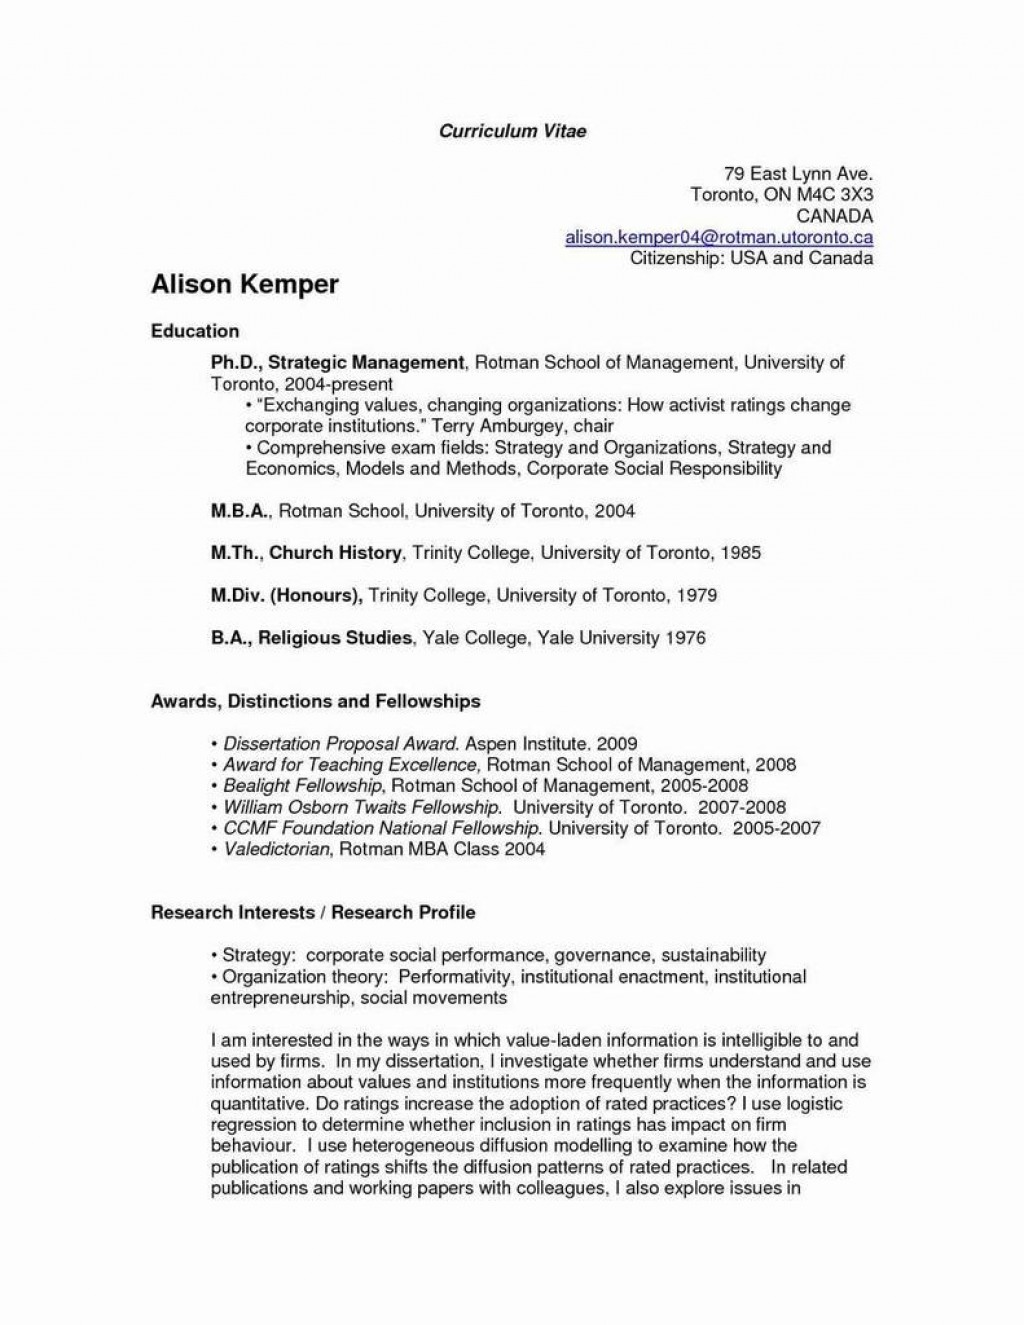 001 The New American Dreamers Ruth Sidel Essay Free Resume Template Singapore Download Awesome Gallery Of Format Germany German Amazing Large